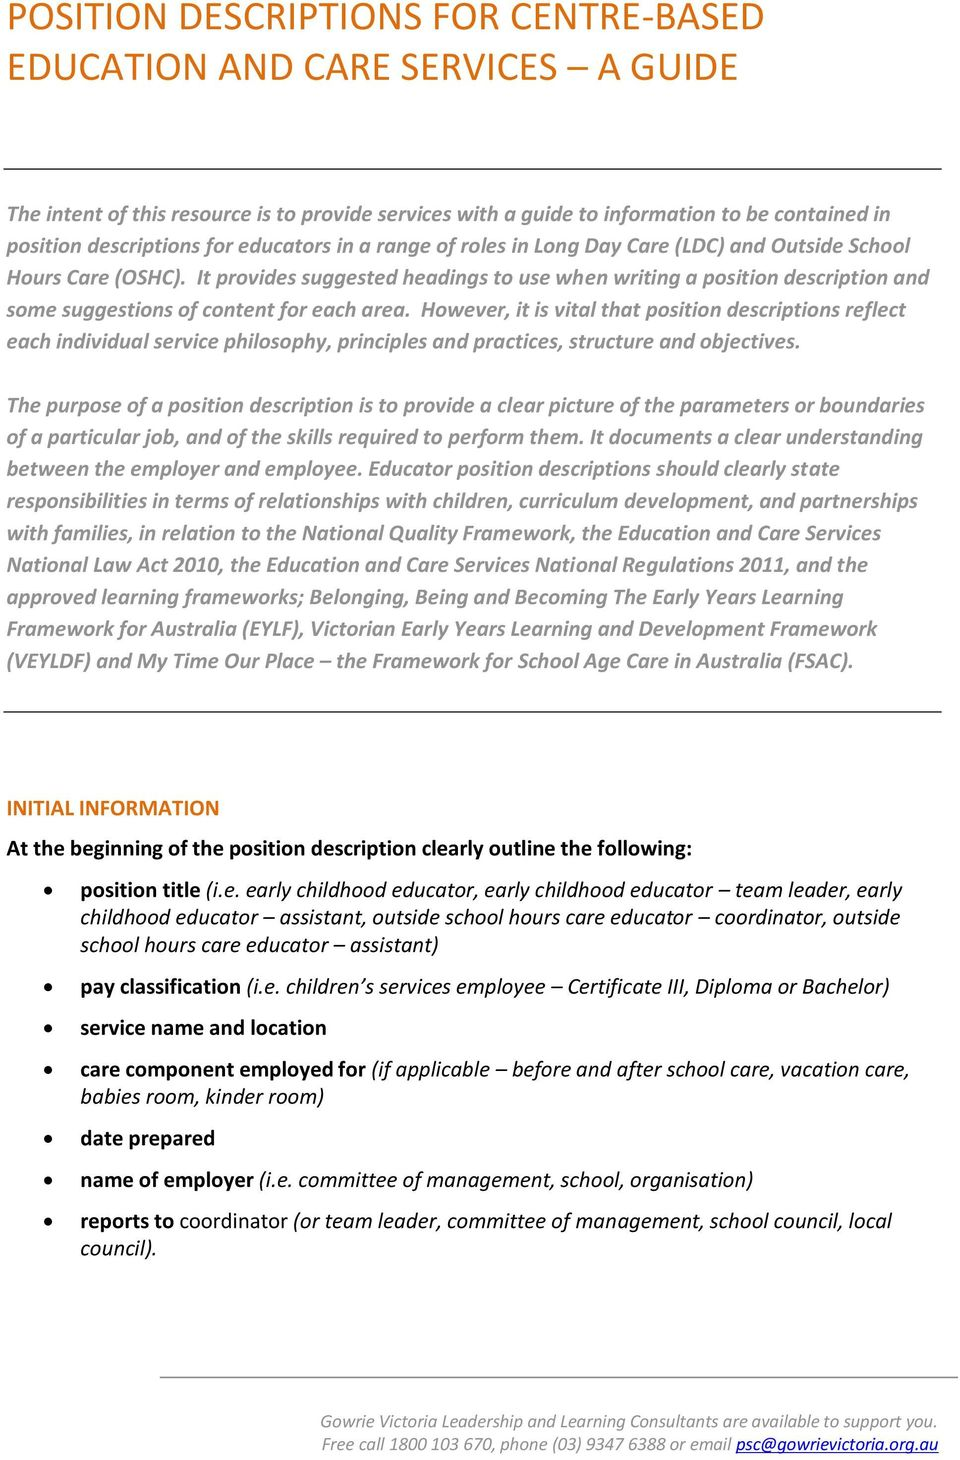 POSITION DESCRIPTIONS FOR CENTRE- BASED EDUCATION AND CARE